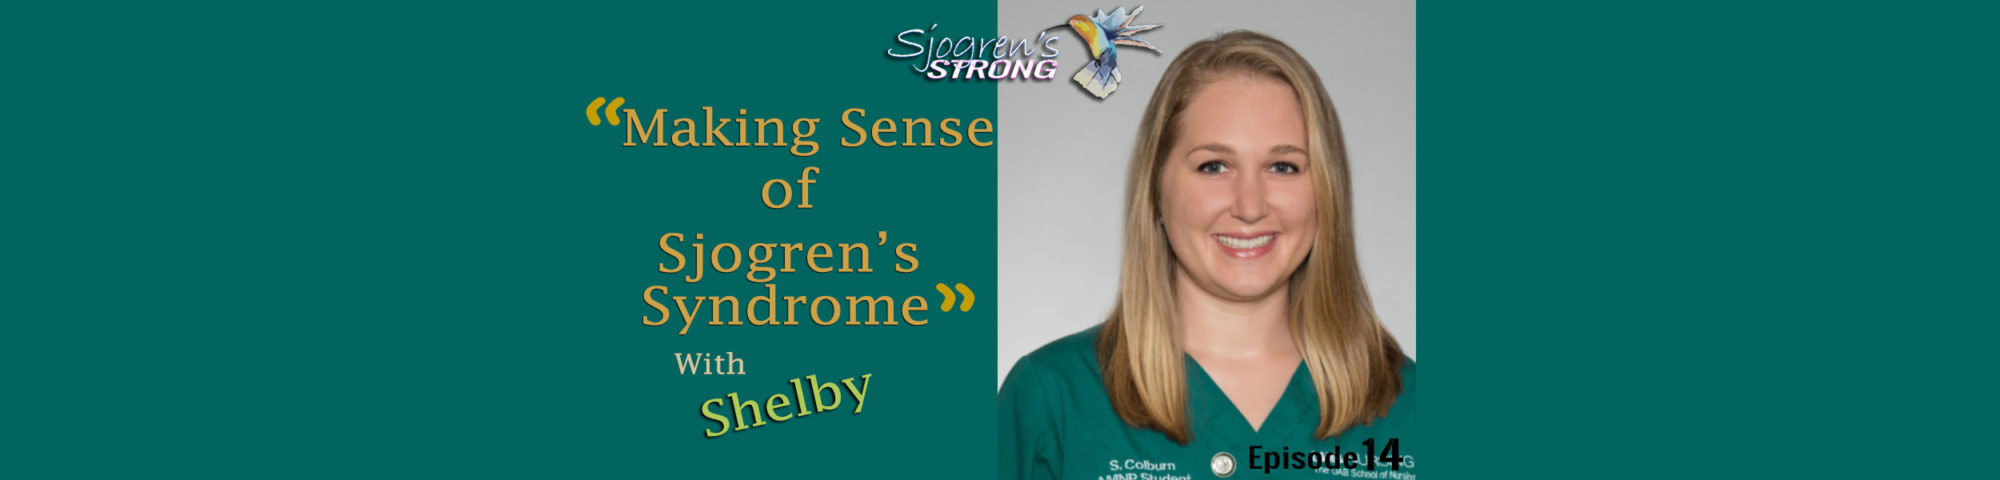 Episode 14, Making Sense of Sjogren's Syndrome a Q & A with Shelby